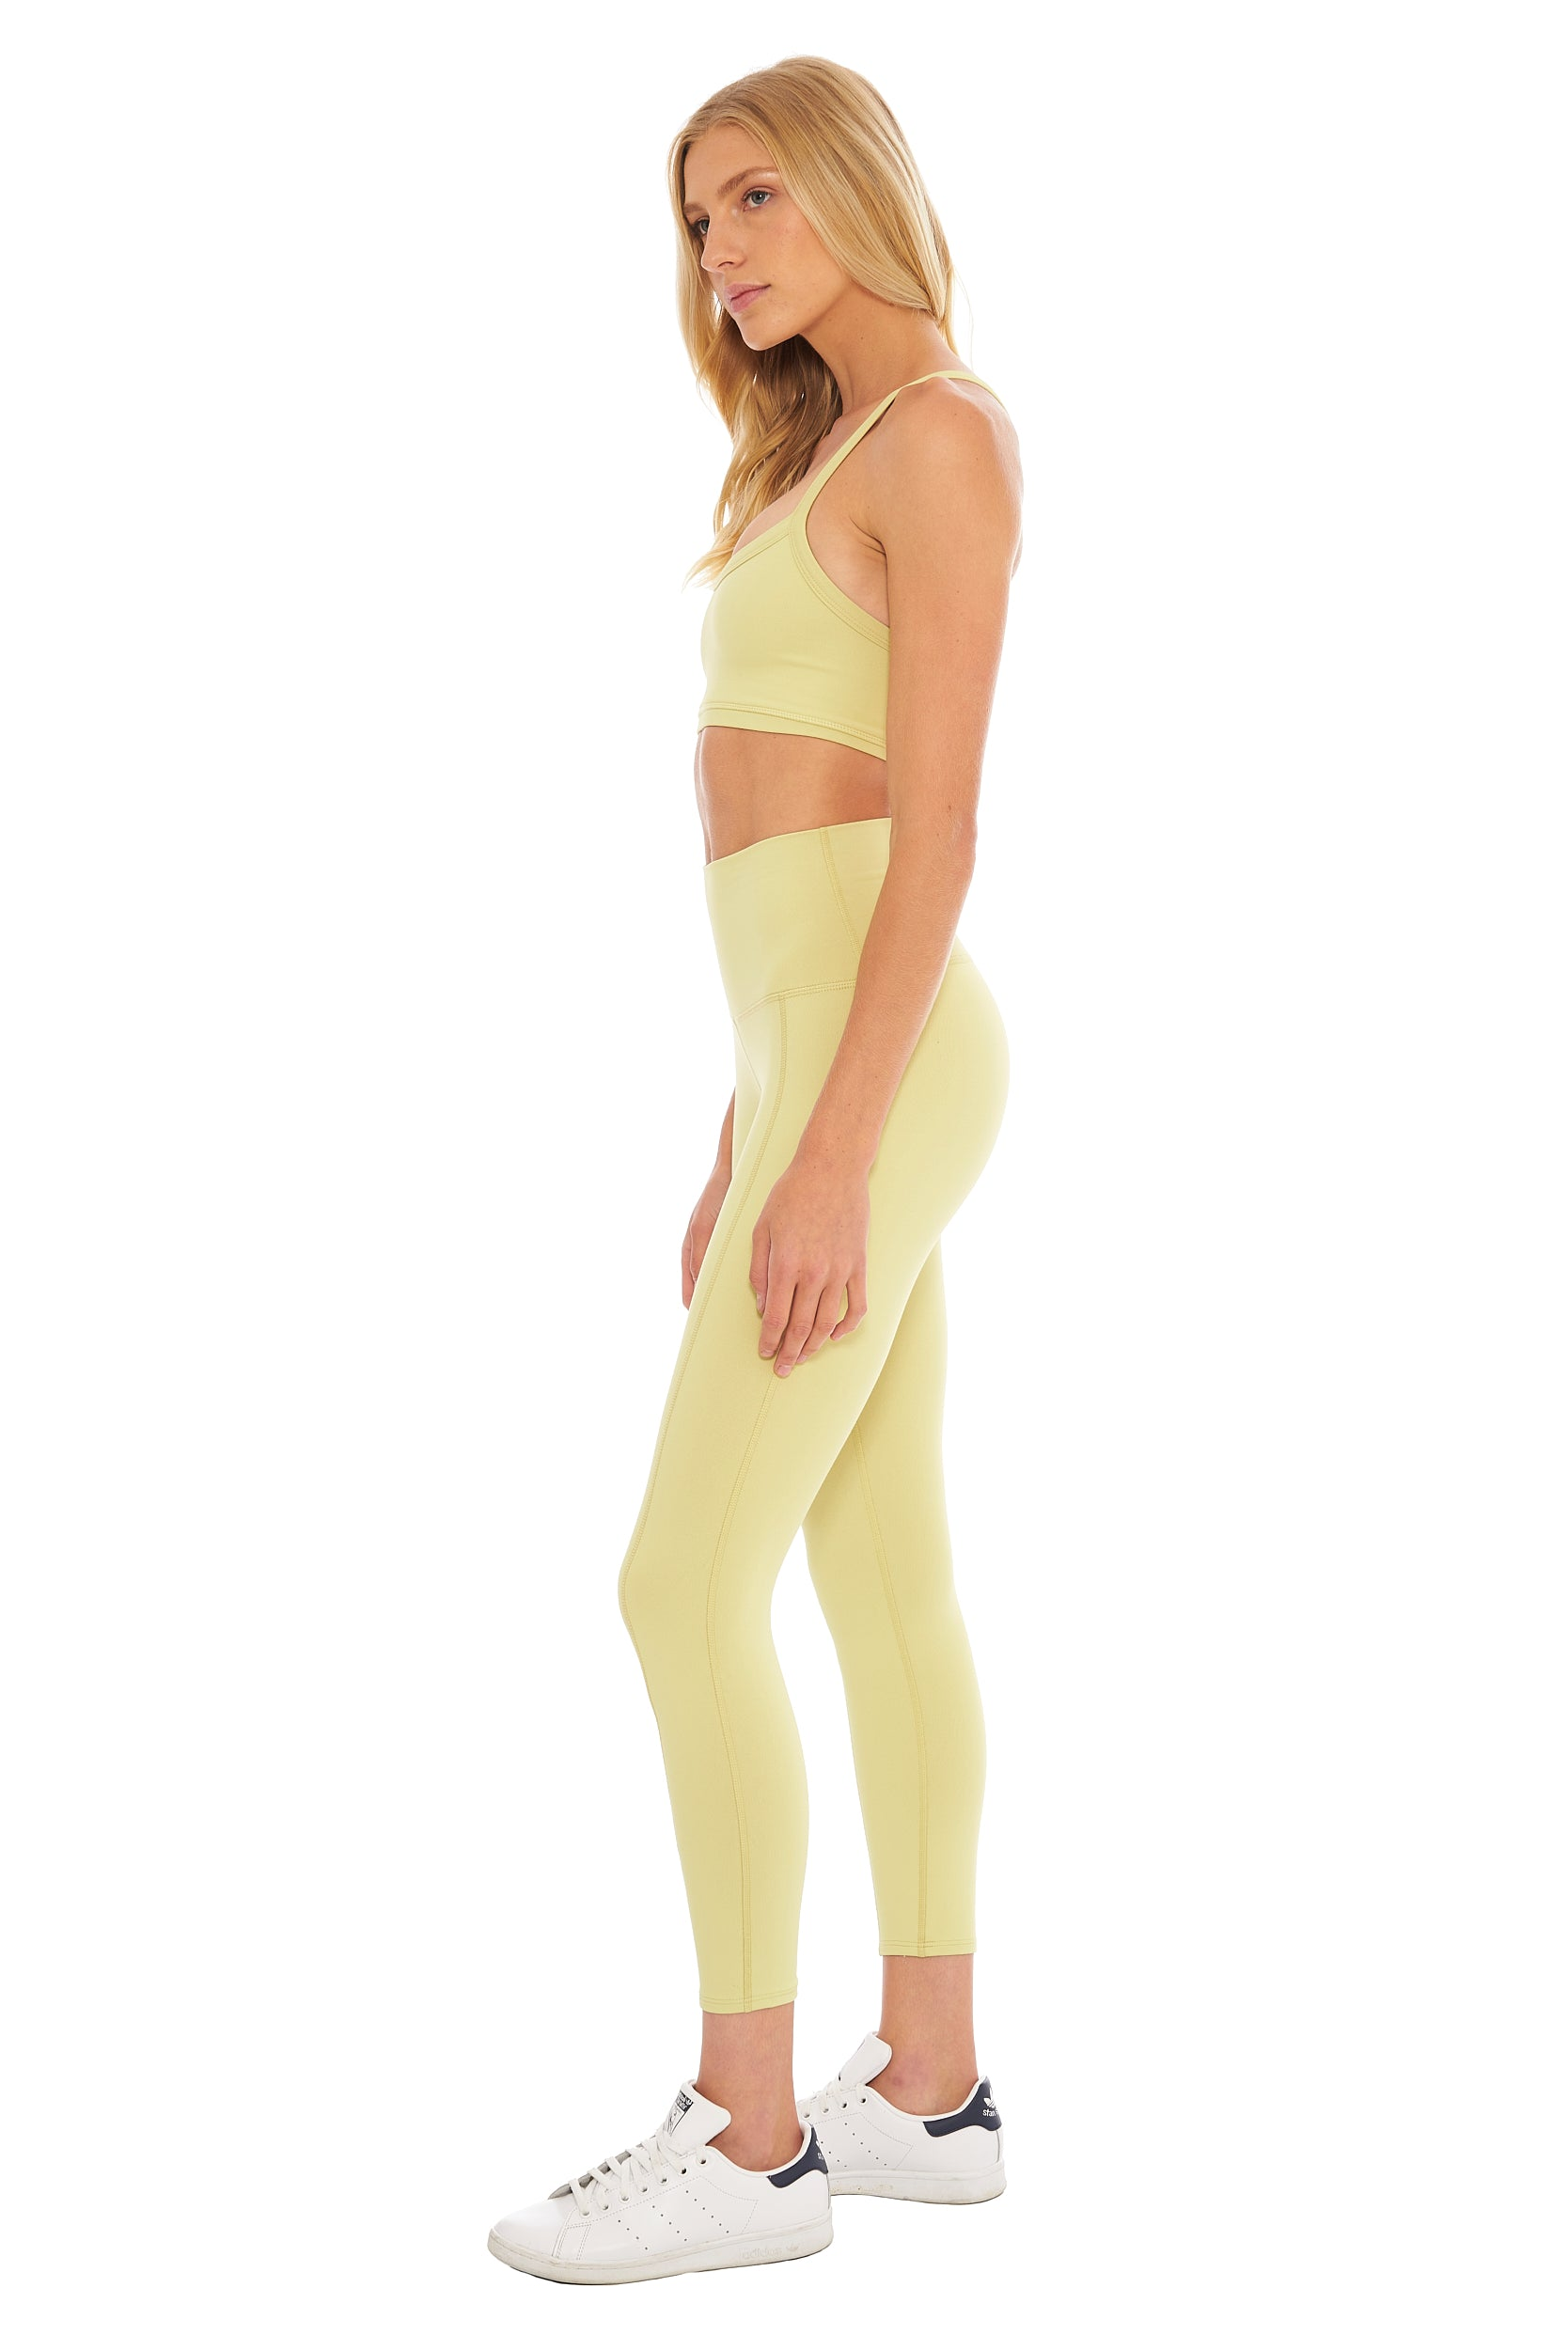 Lemon Lime Sports Bra